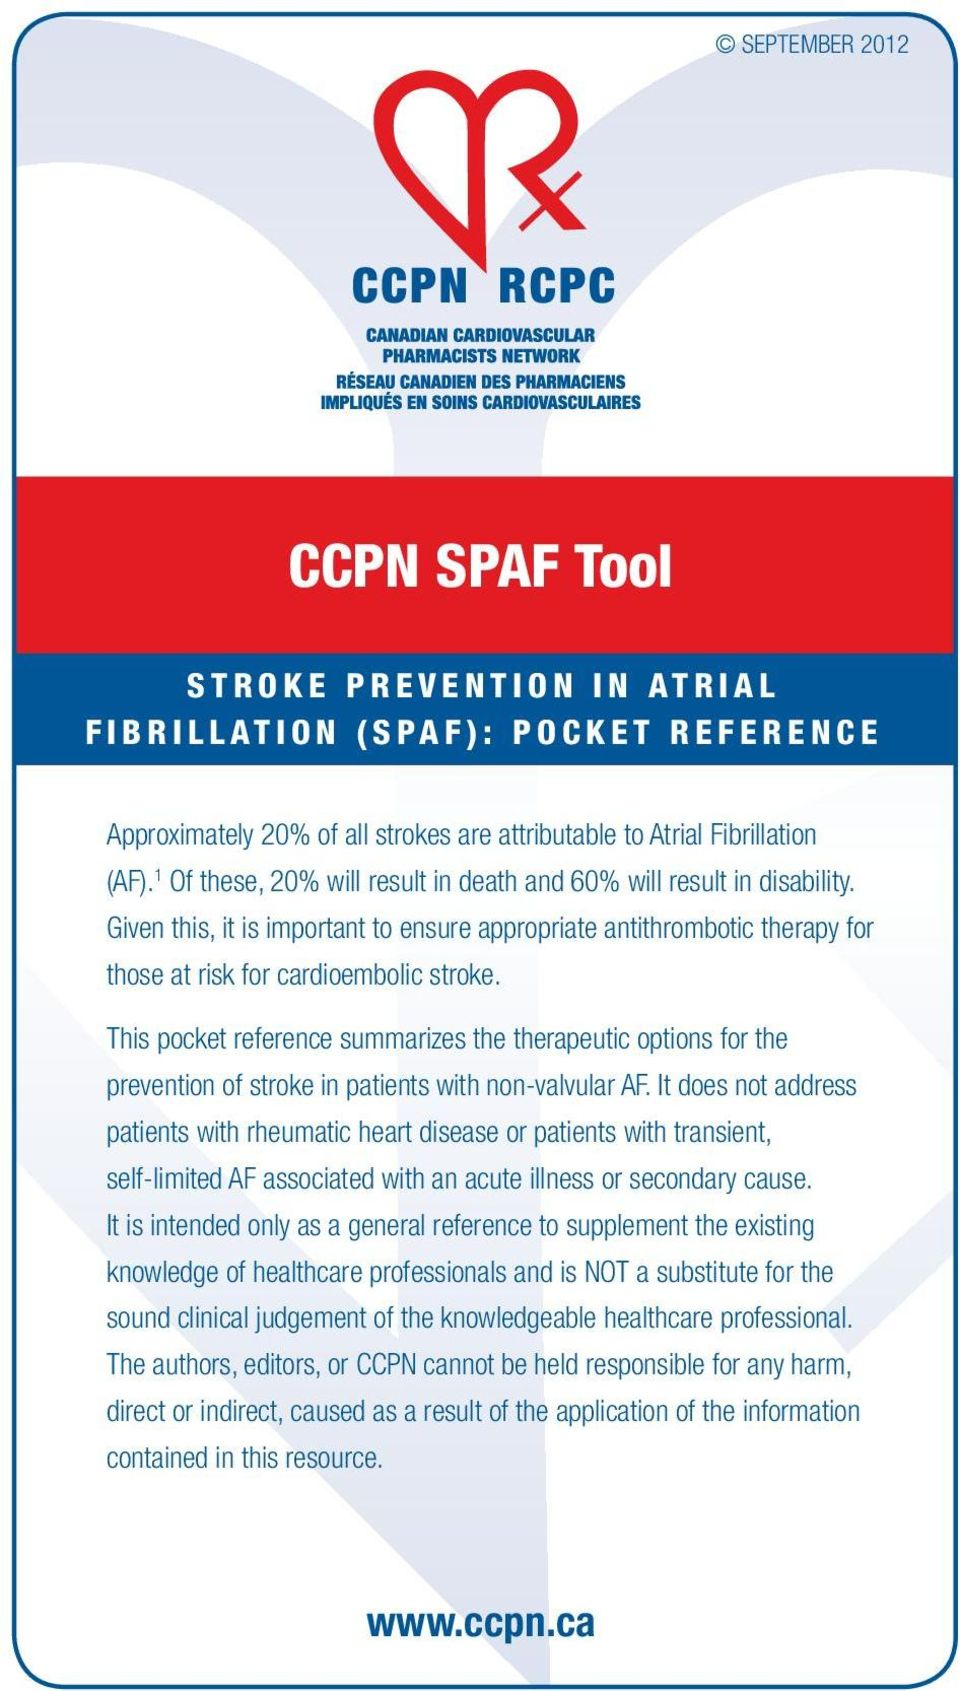 This pocket reference summarizes the therapeutic options for the prevention of stroke in patients with non-valvular AF.